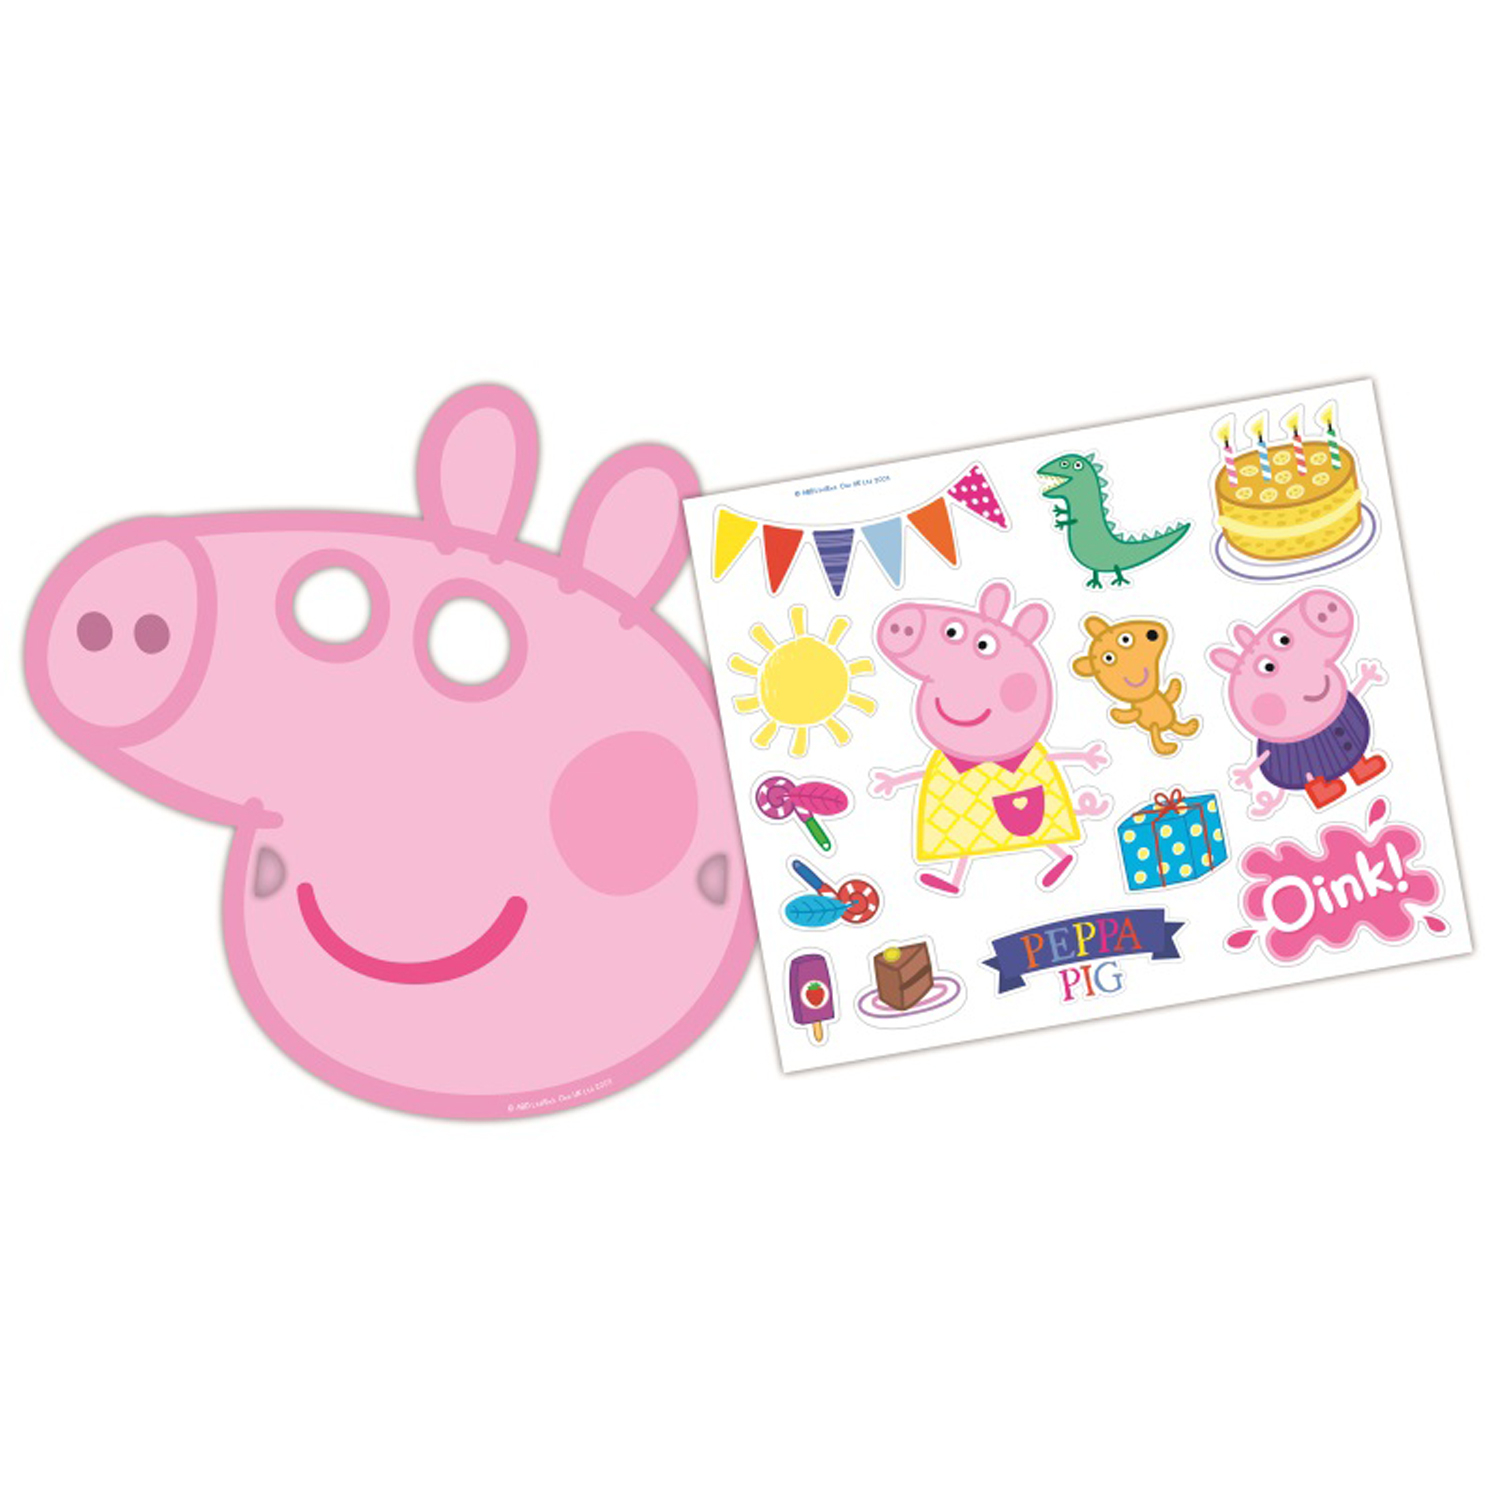 Peppa Pig Rainbow Masks & Sticker Sets